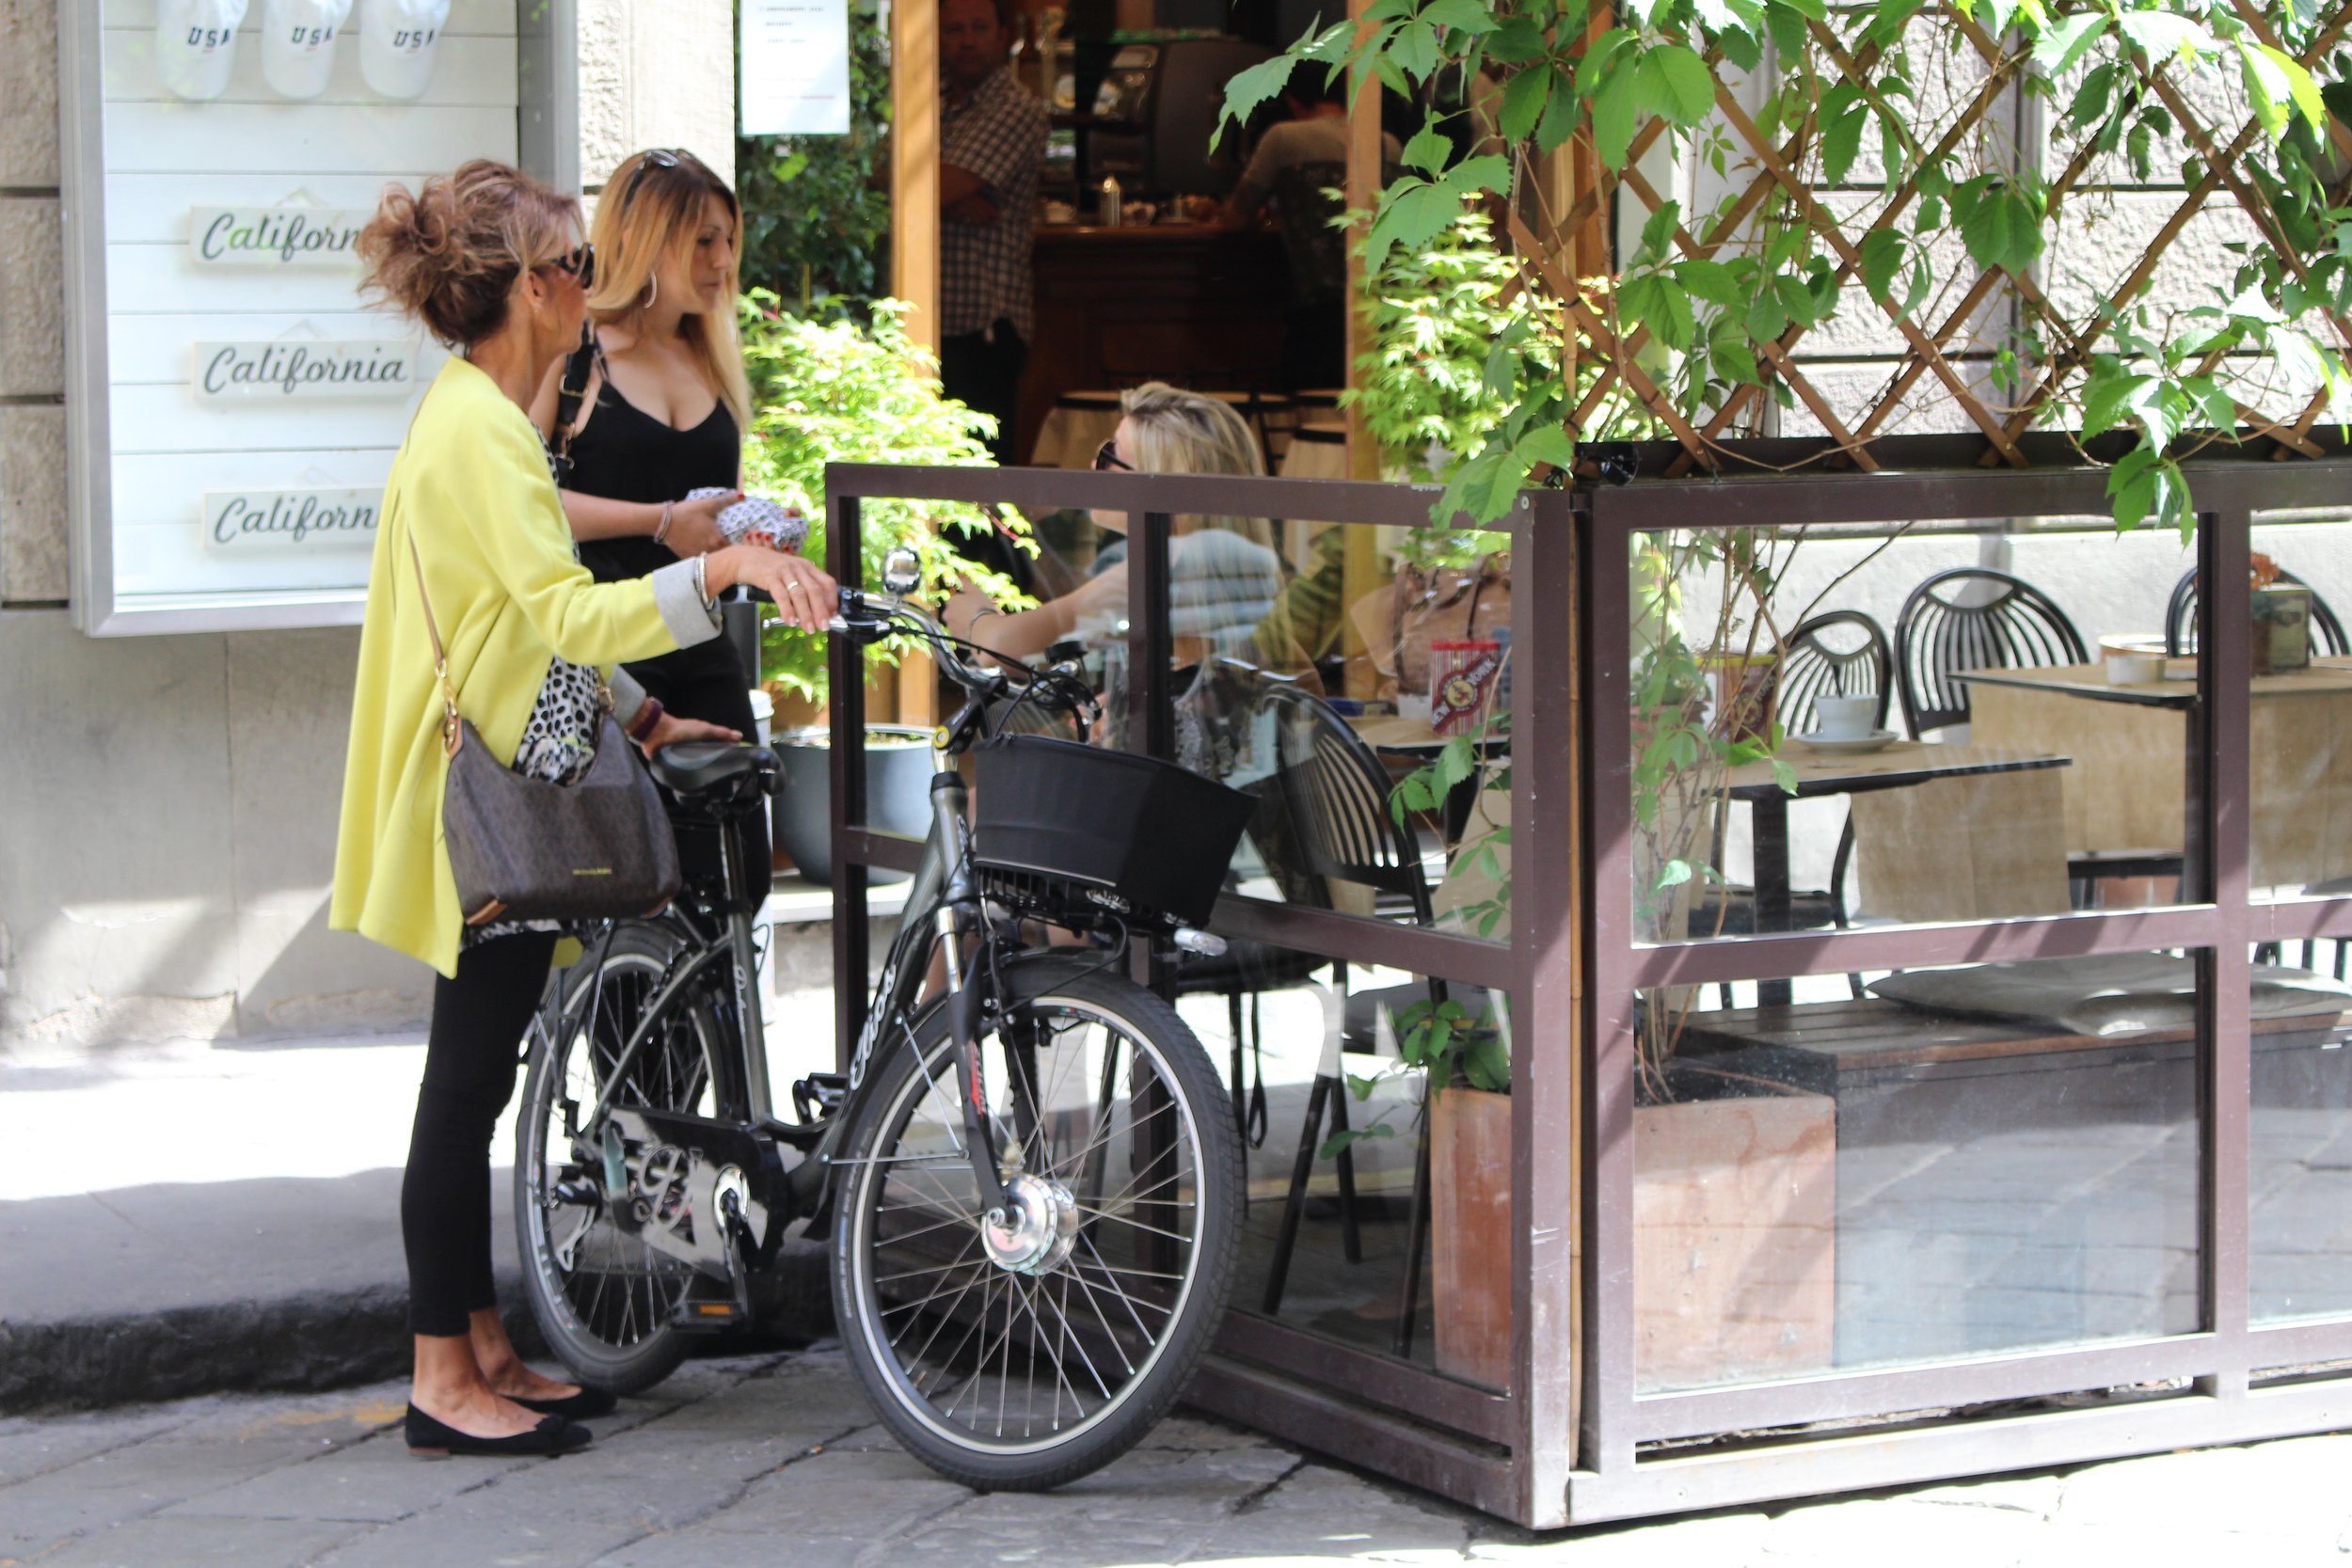 Every day life in Florence Italy. Style, bikes and girlfriends.